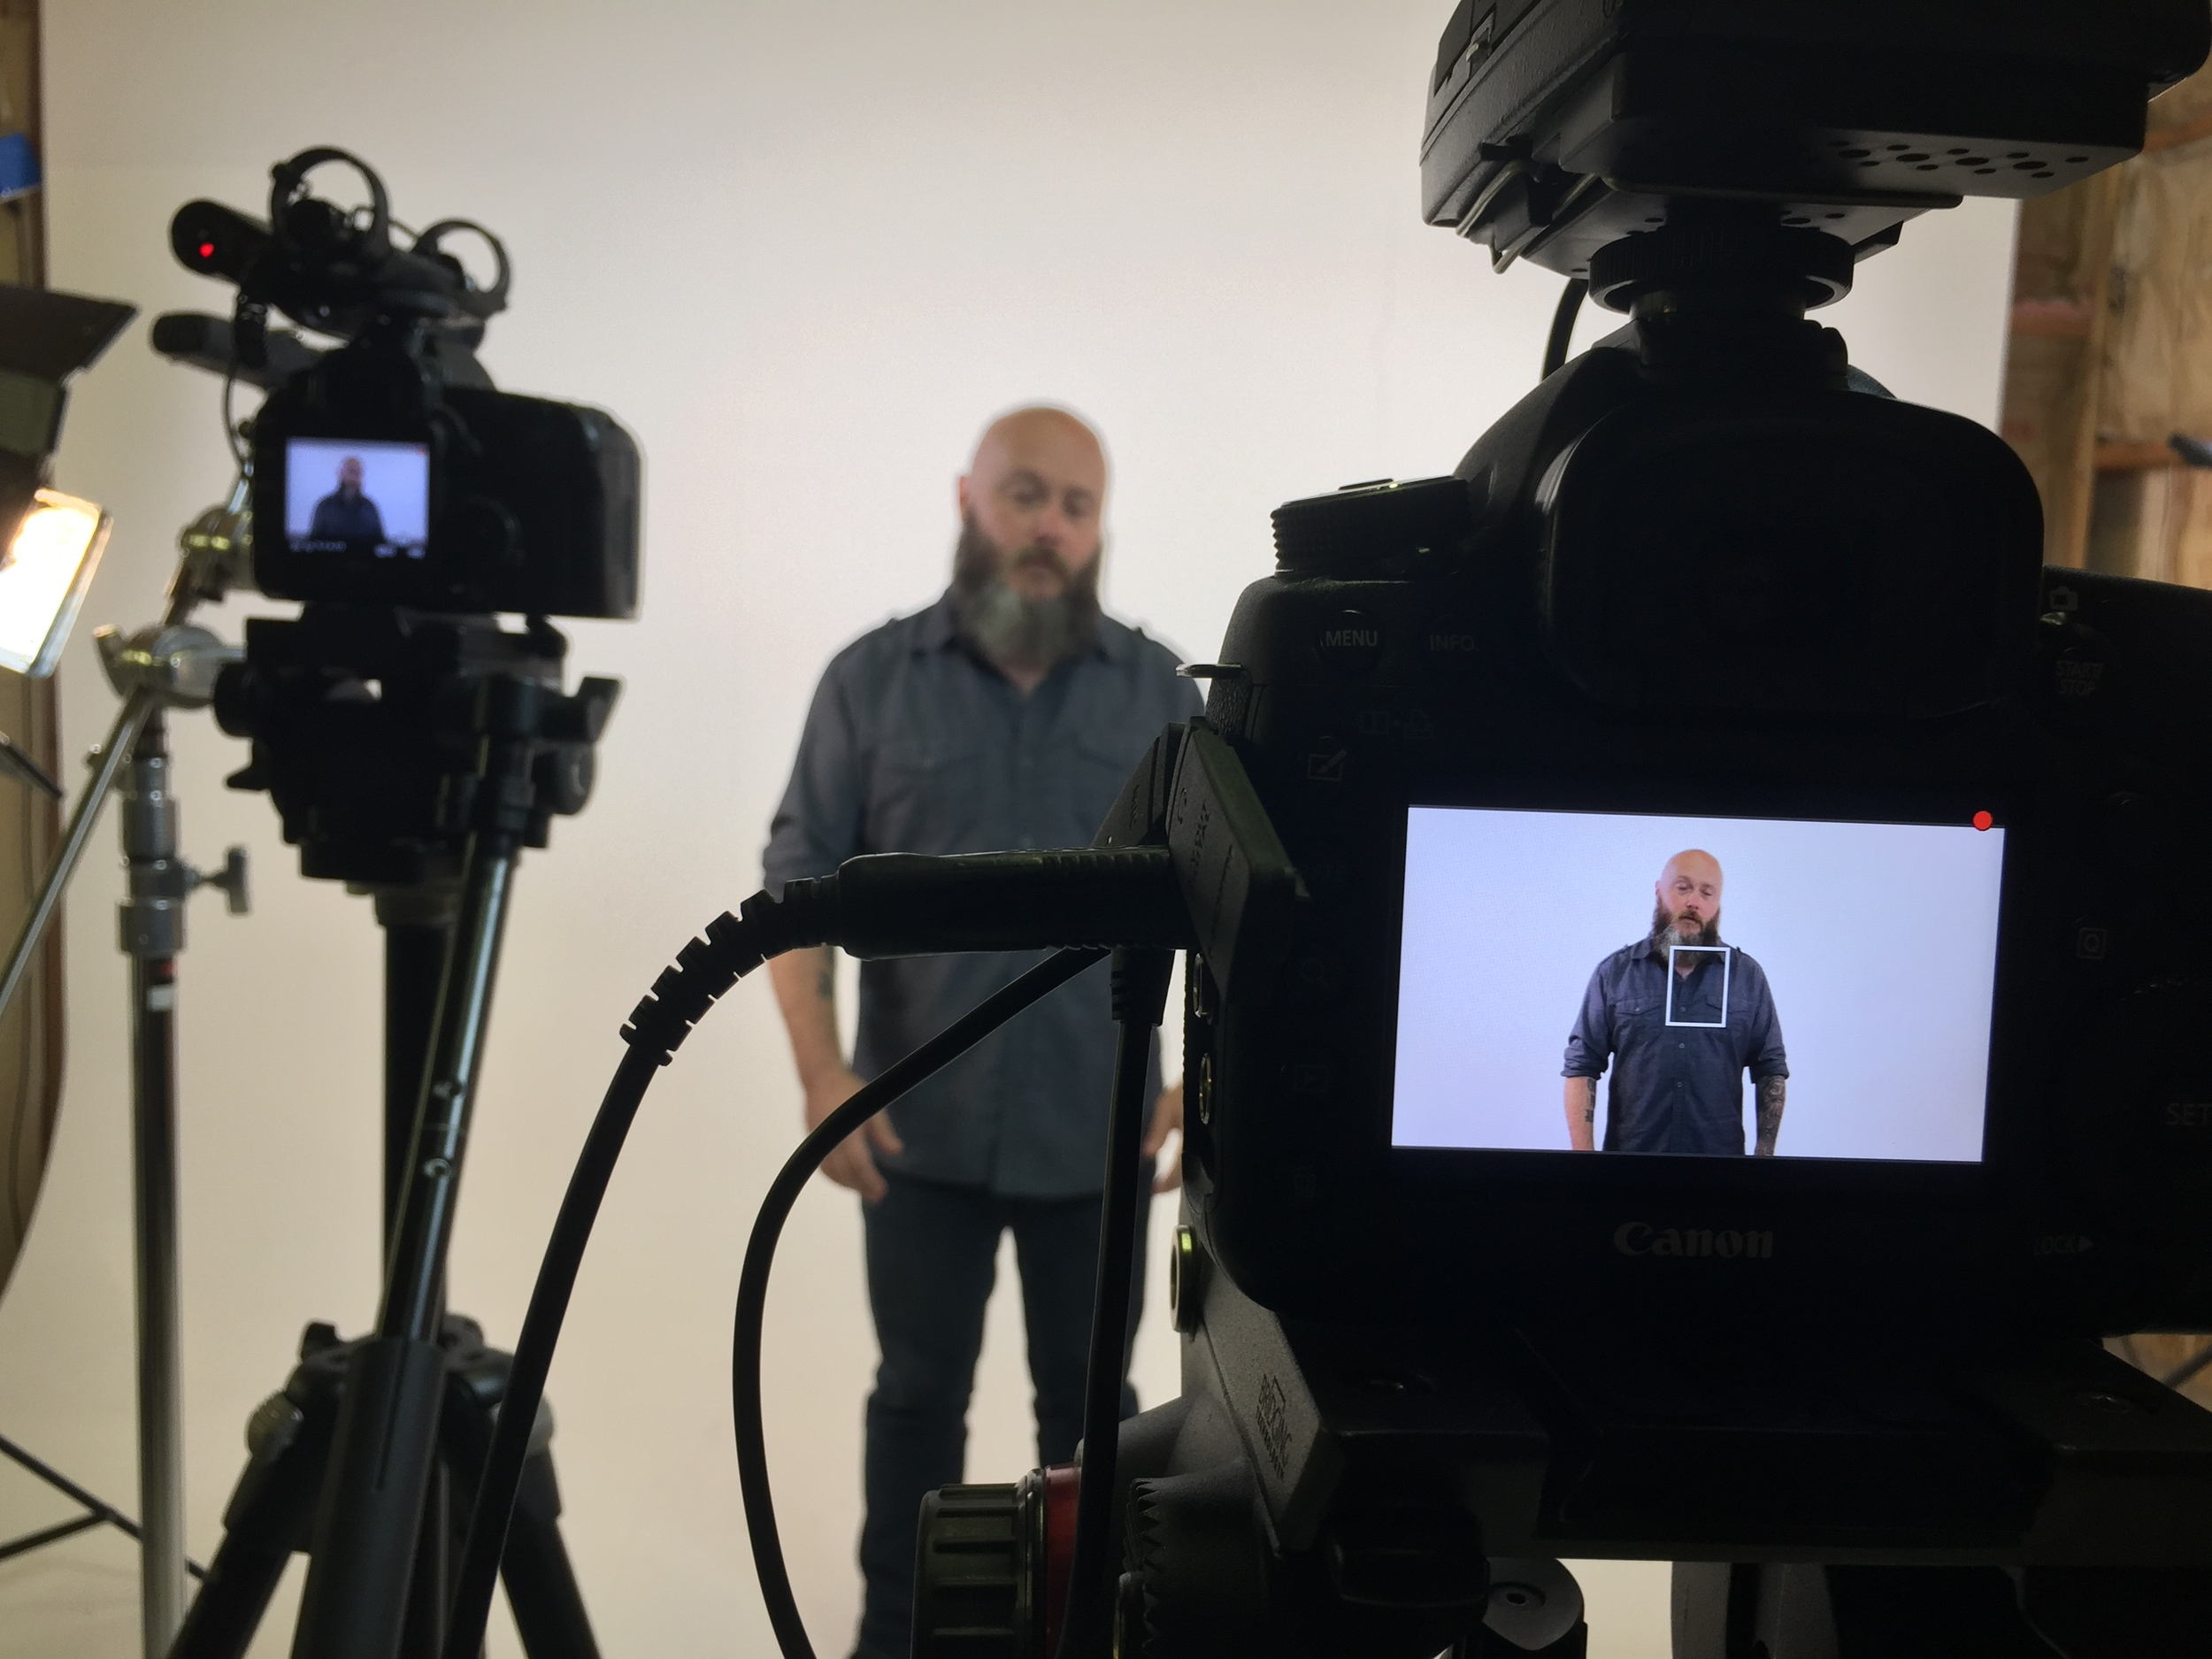 Recording a video on the doctrine of the Trinity.